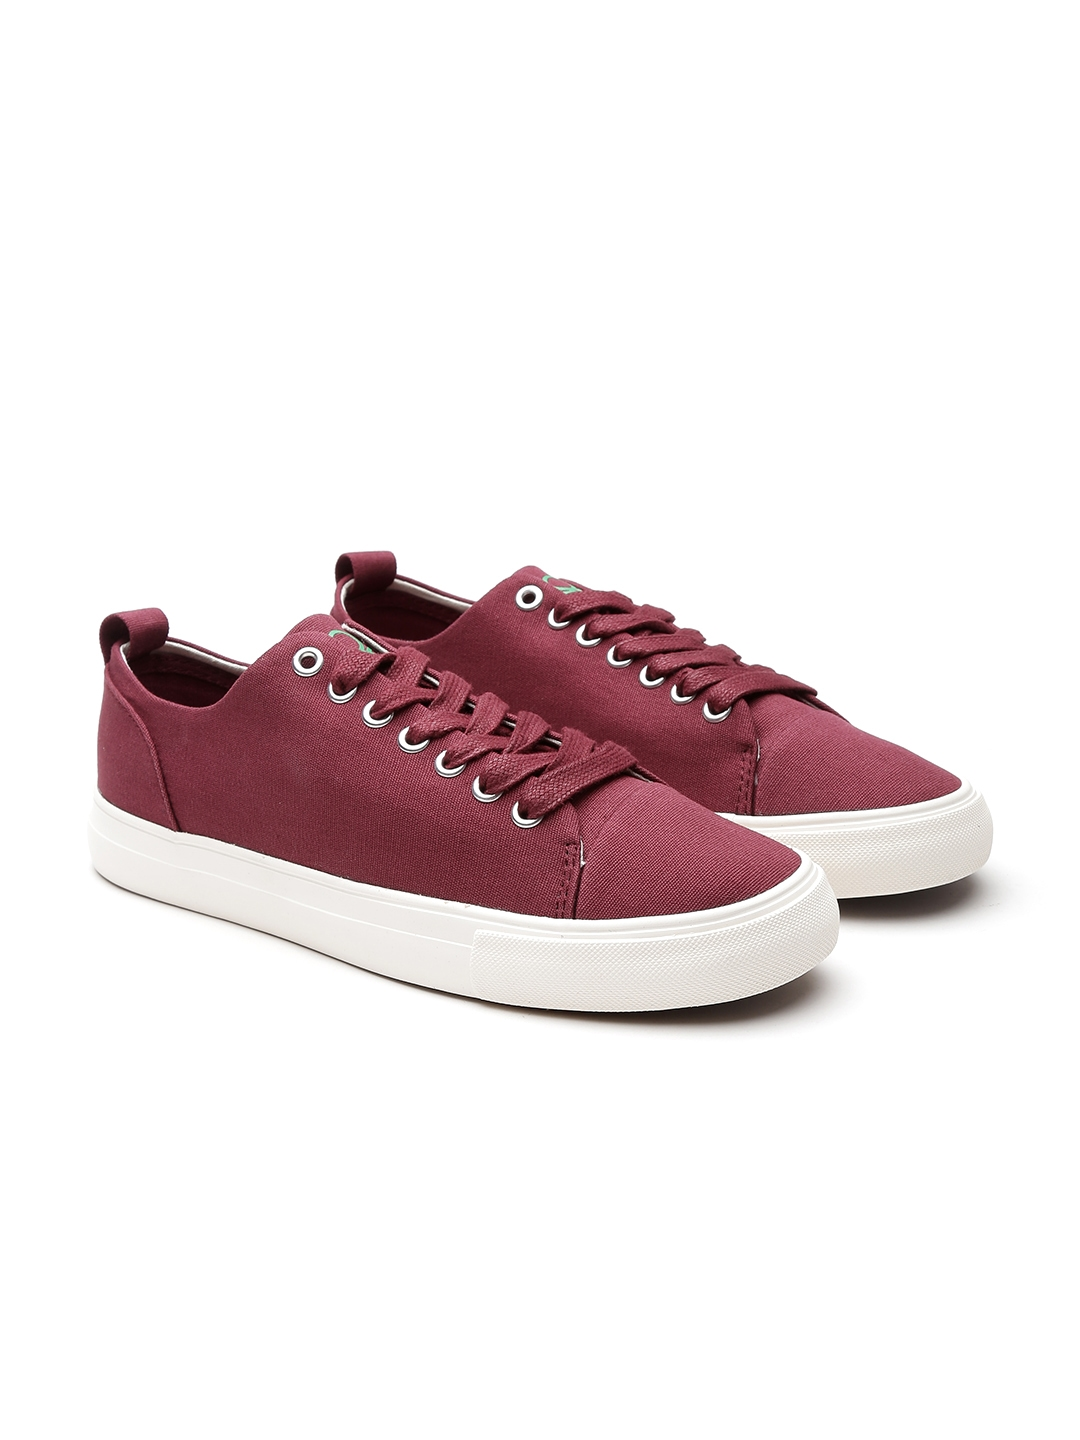 Buy United Colors Of Benetton Men Burgundy Sneakers Casual Shoes